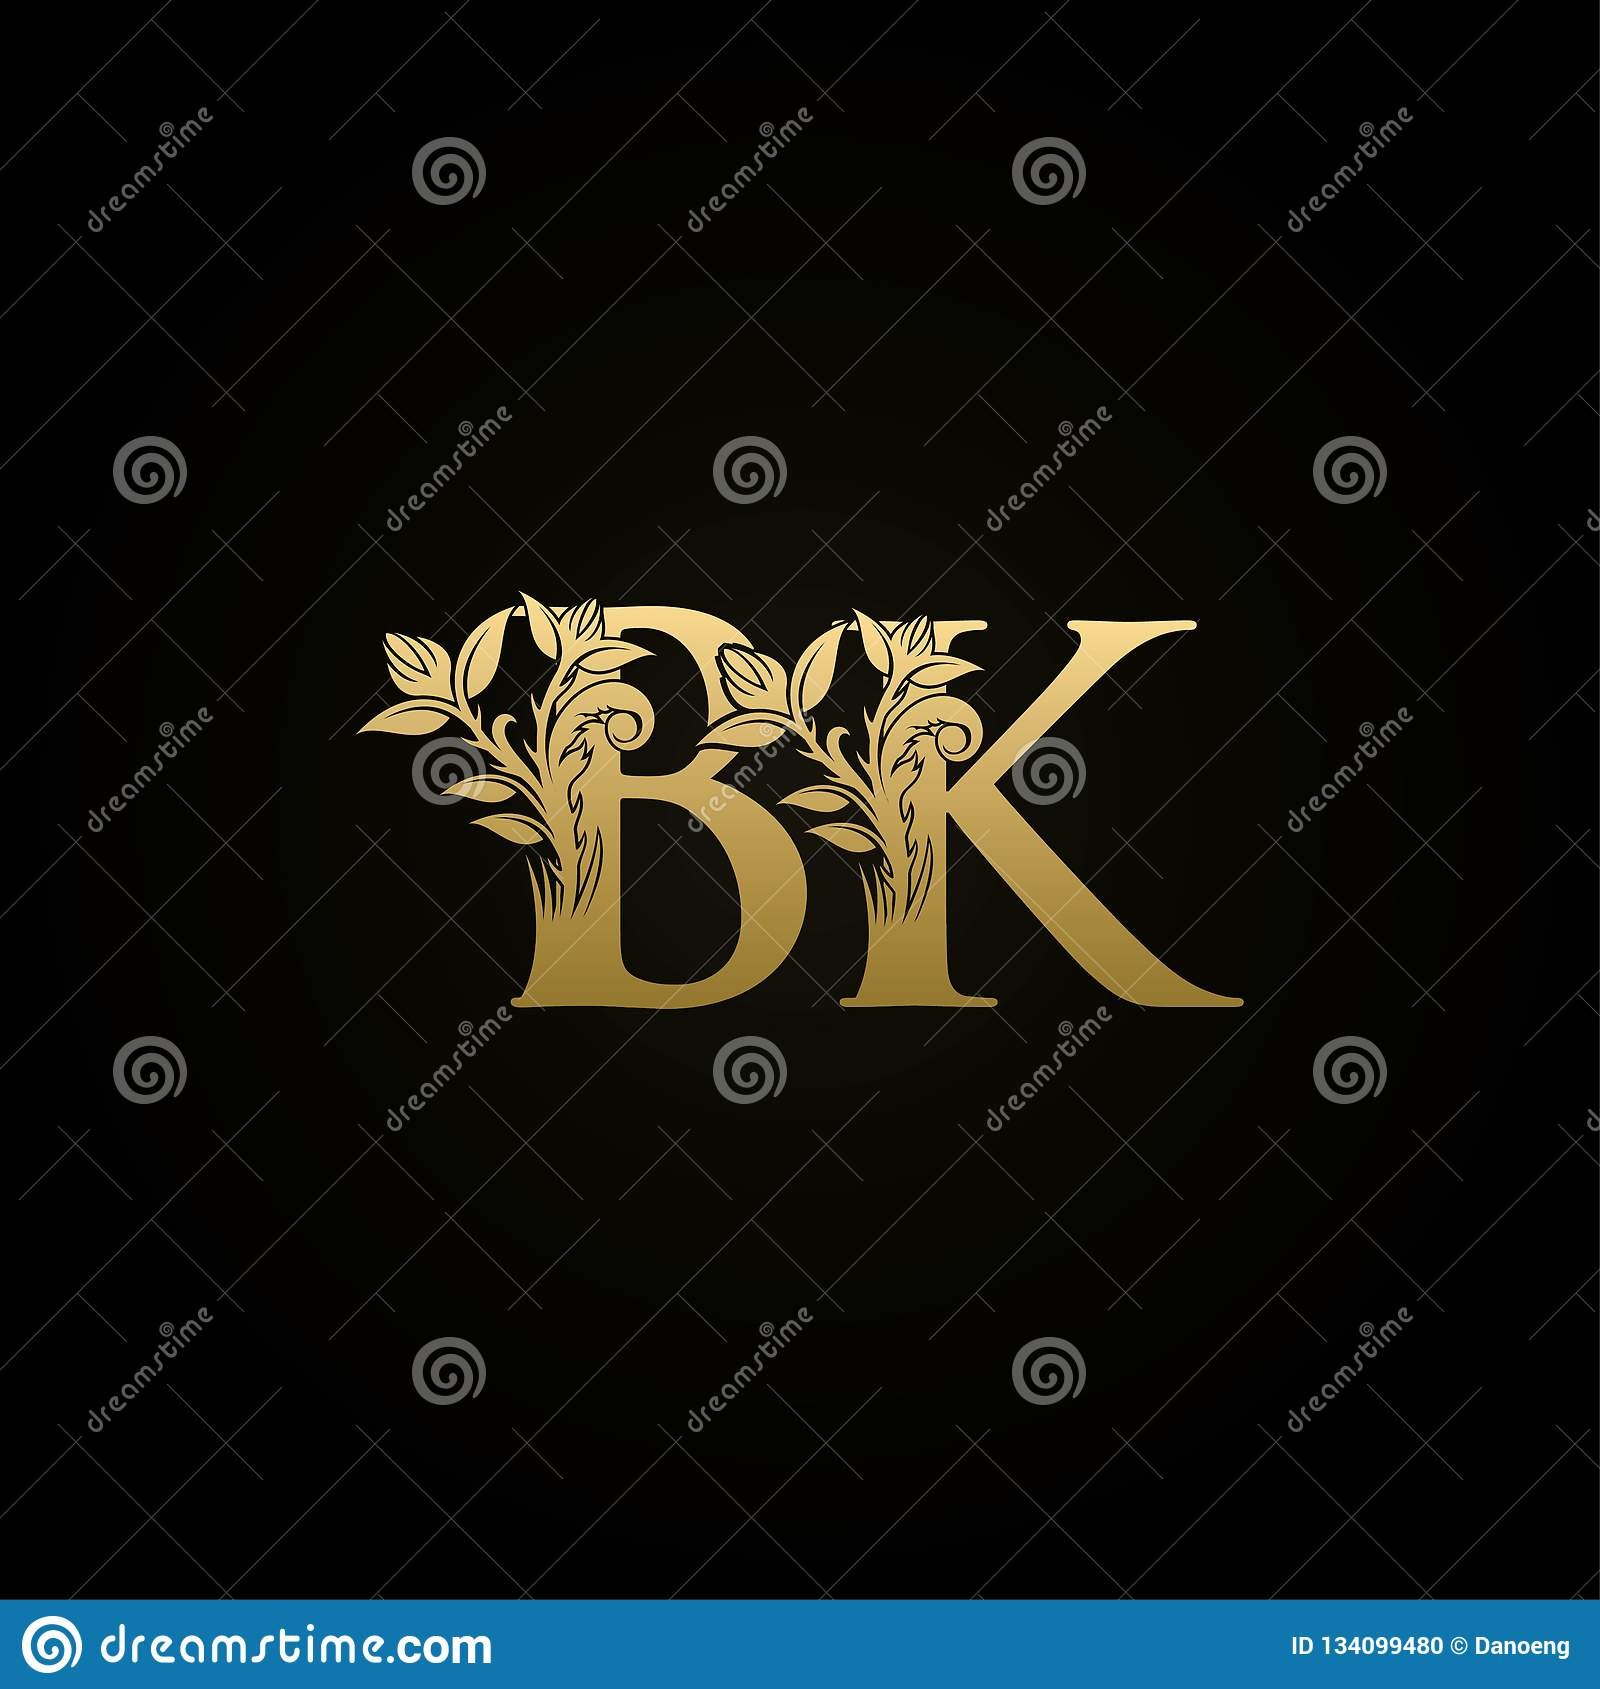 Classy Bk Letter Gold Logo Stock Illustration Illustration